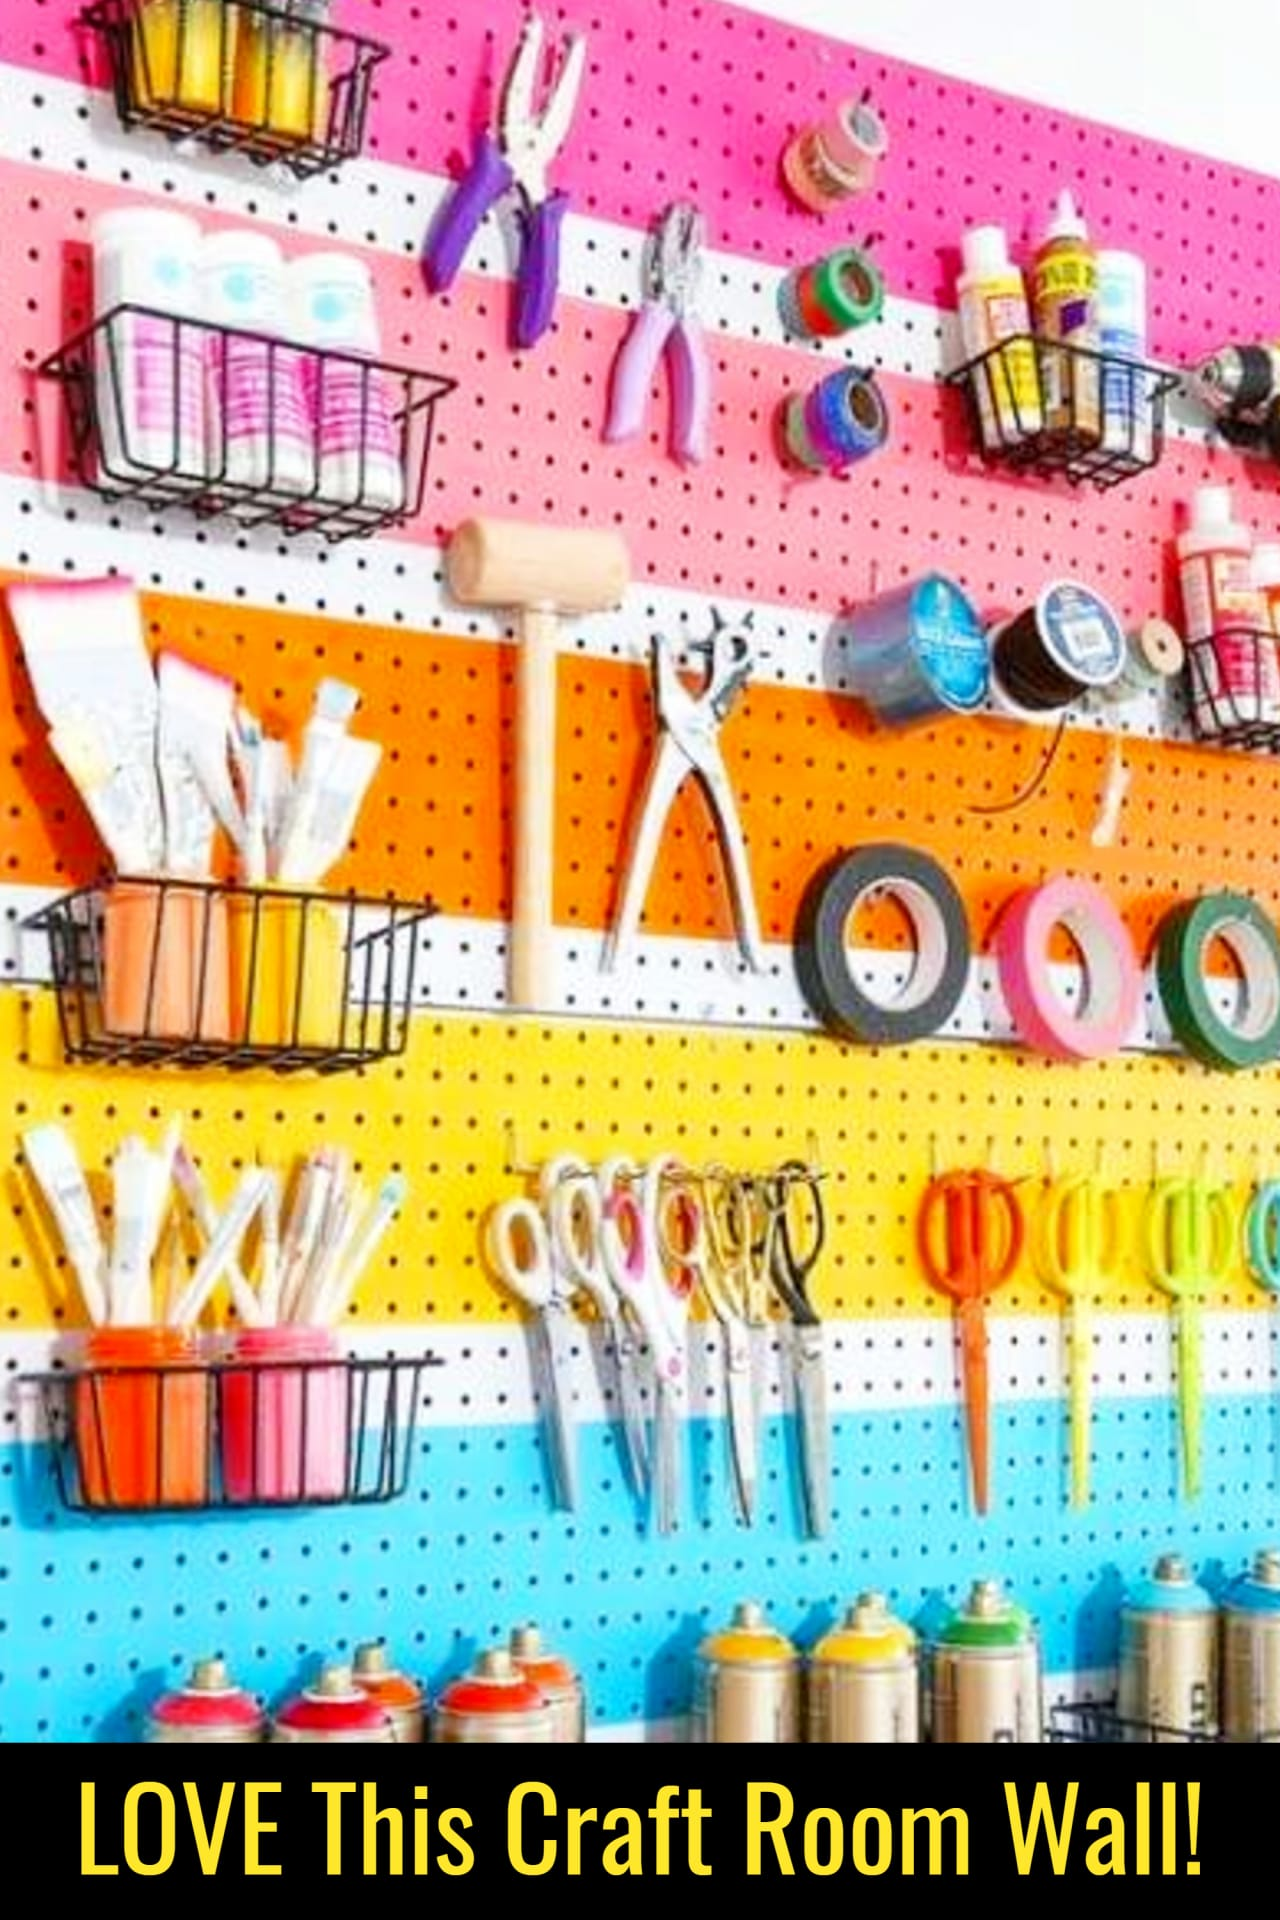 Craft room ideas on a budget - cheap craft room organization ideas - love this craft room wall organizer for organizing my craft supplies!